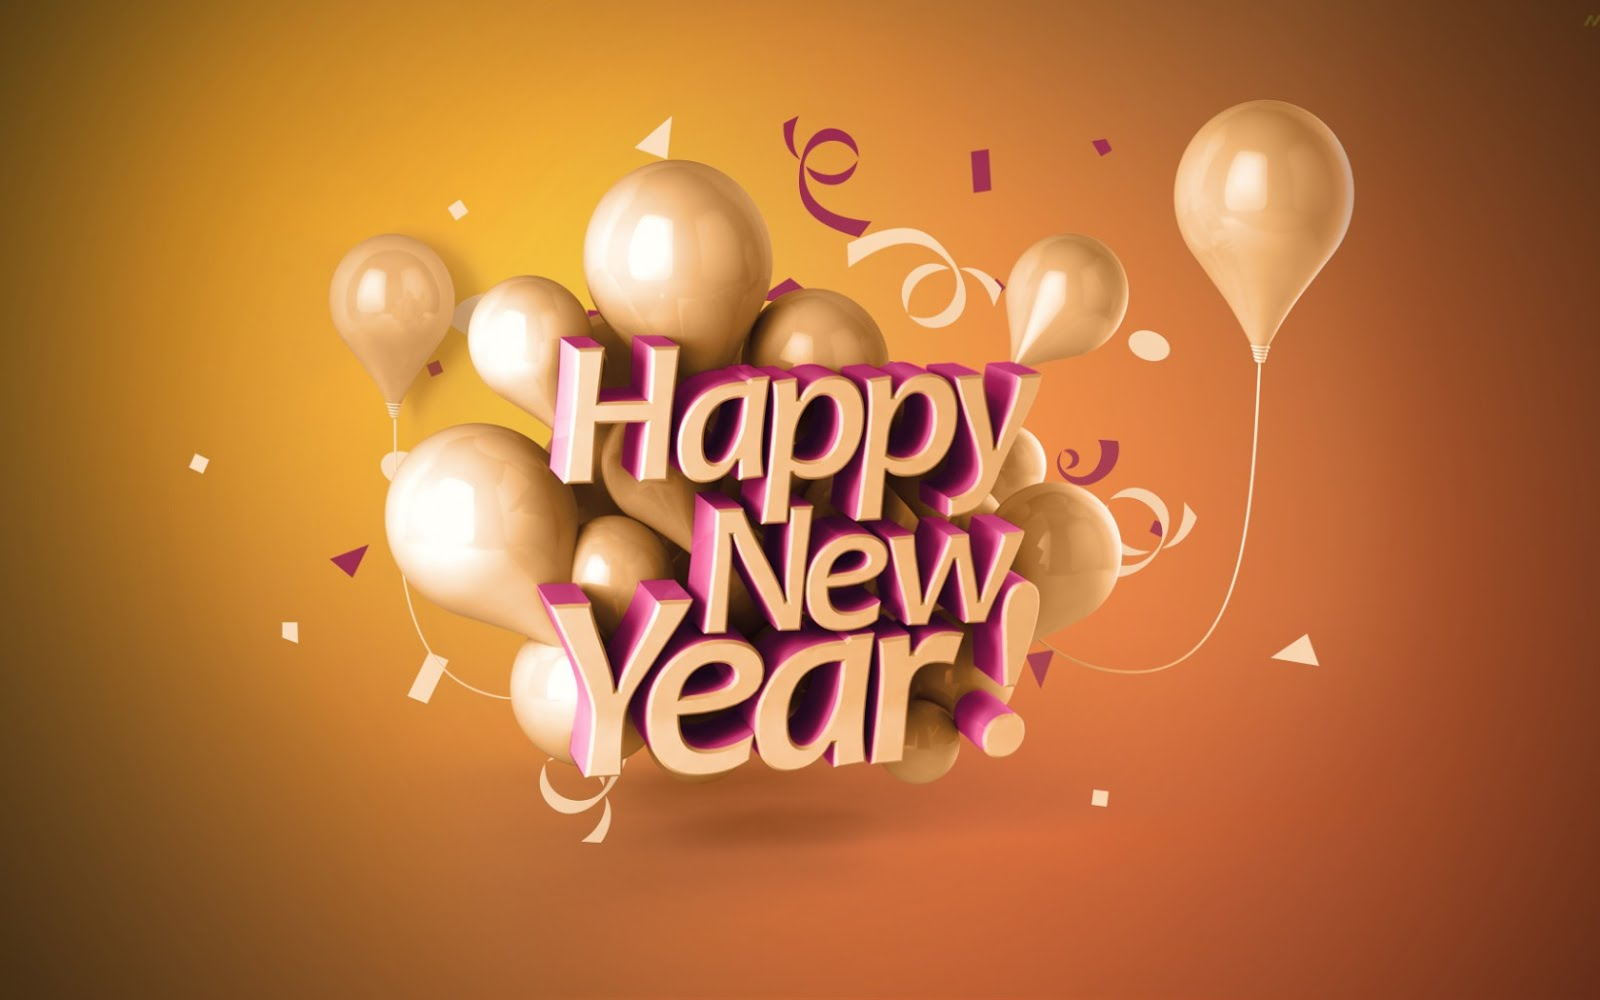 Check Also: Happy New Year 2018 Quotes, Wishes, SMS And Messages